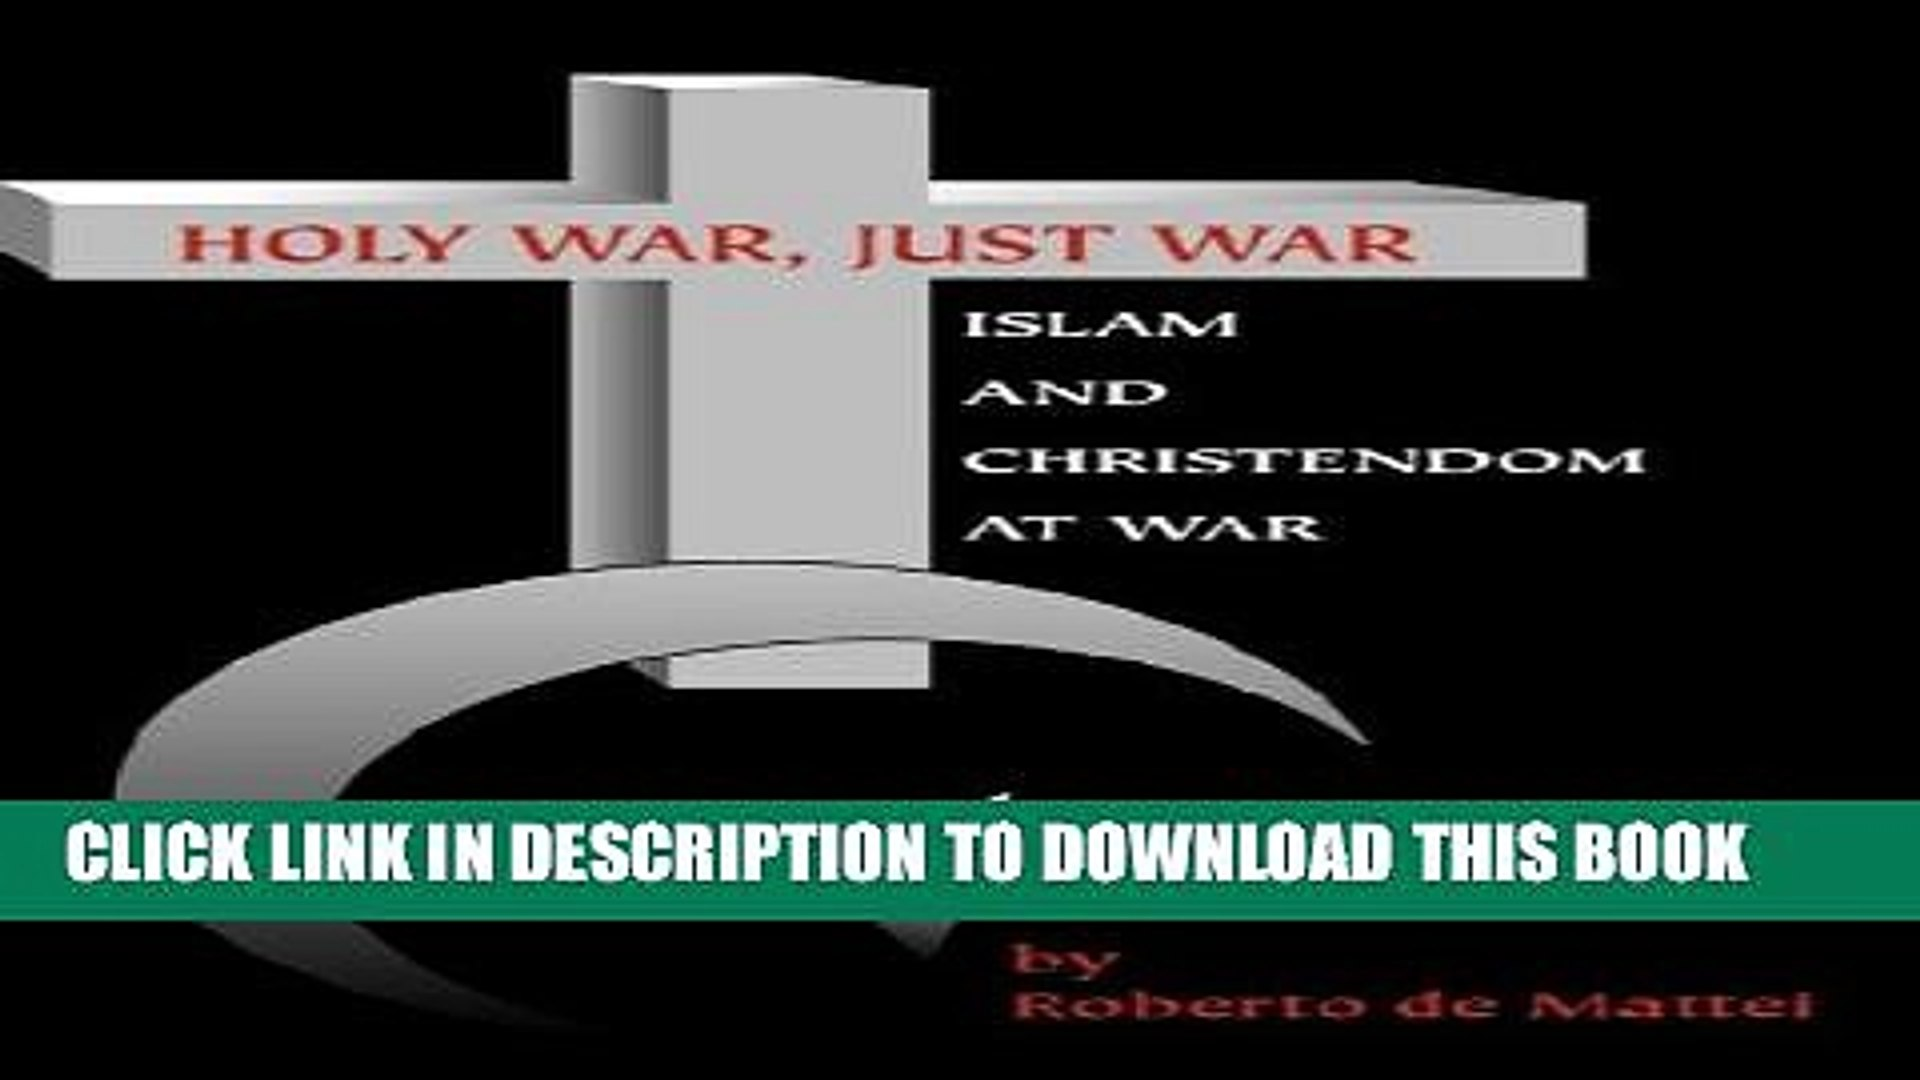 [PDF] Holy War, Just War: Islam and Christendom at War Popular Collection